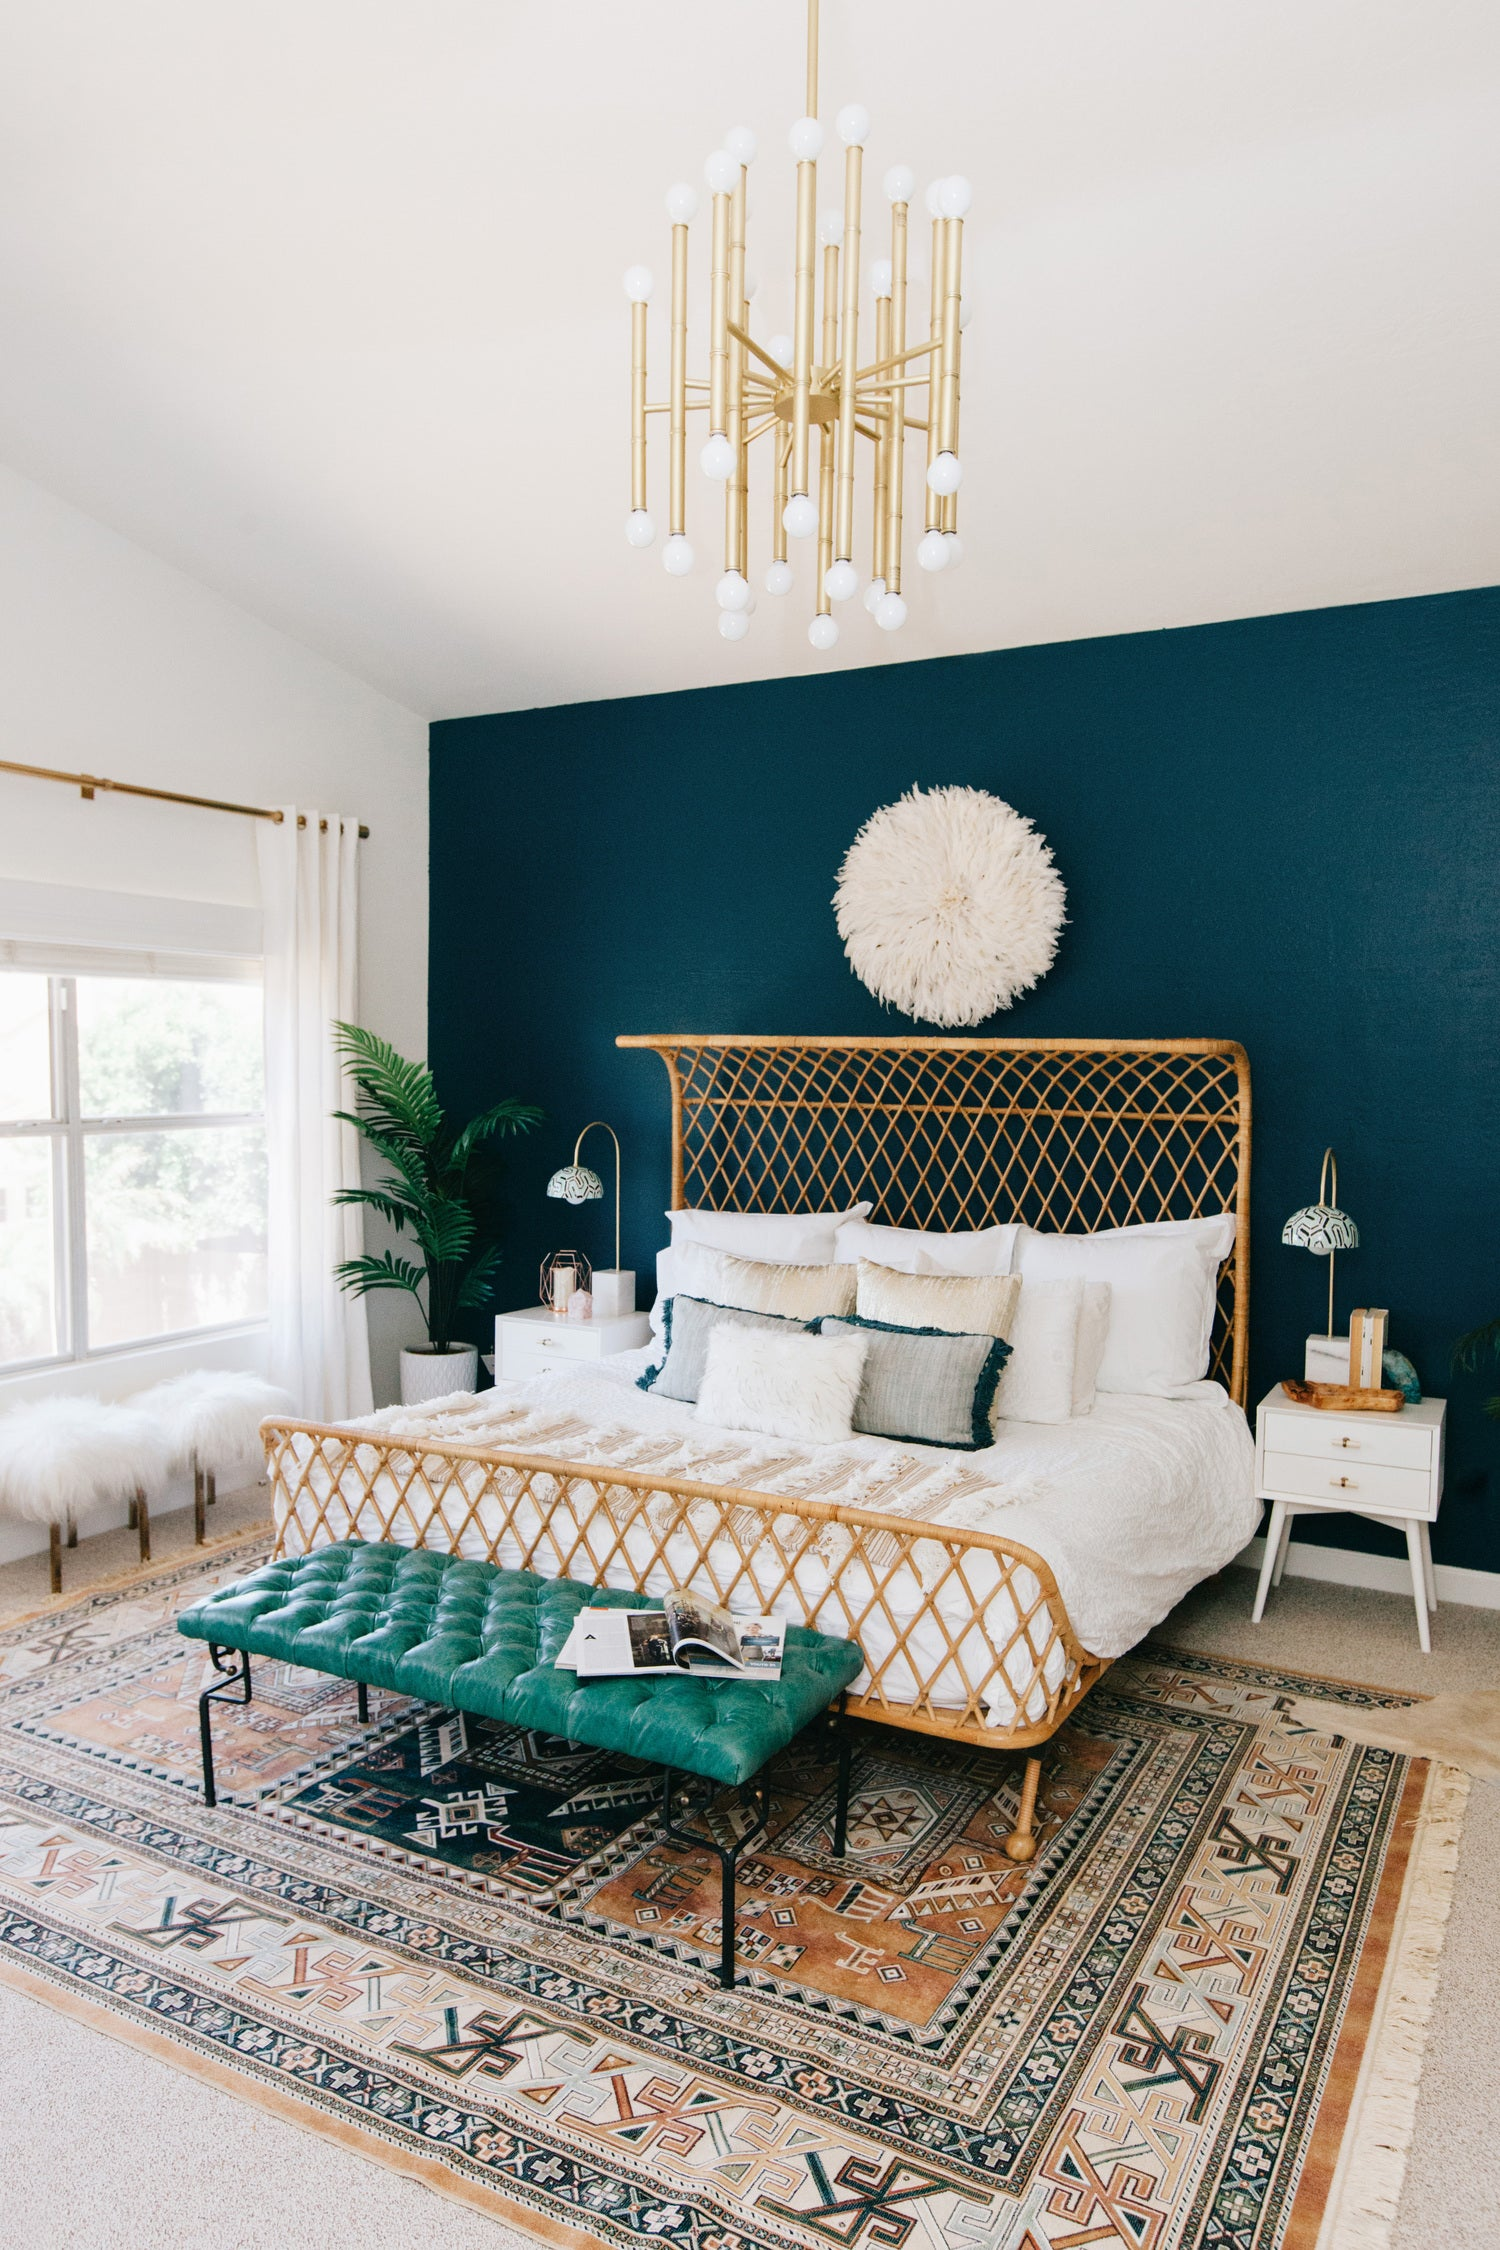 How to Decorate Your Bedroom - Design School Sunday - Sigrid & Co.